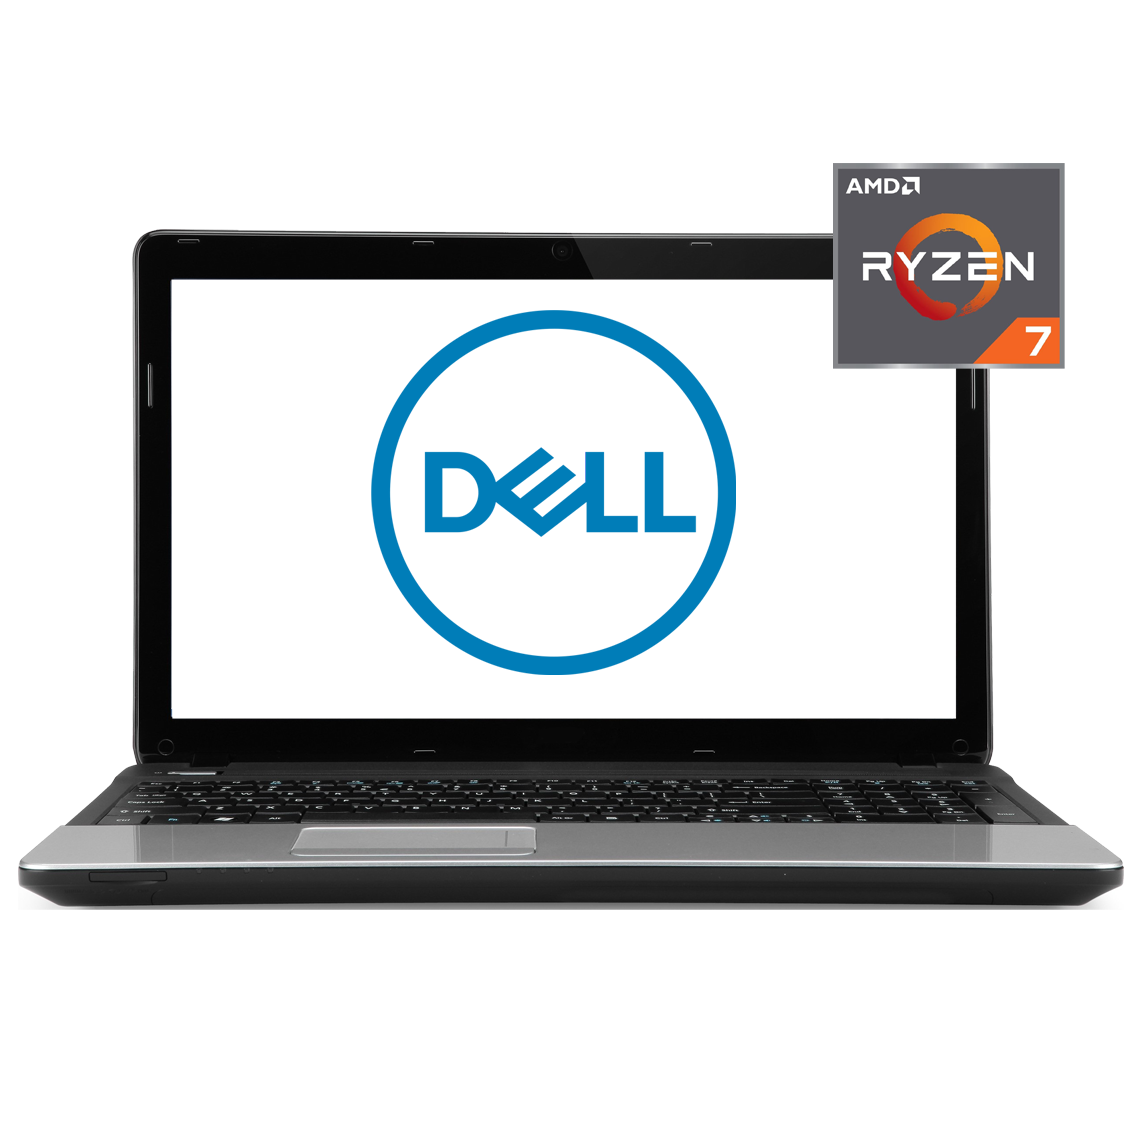 Dell - 13 inch AMD Ryzen 7